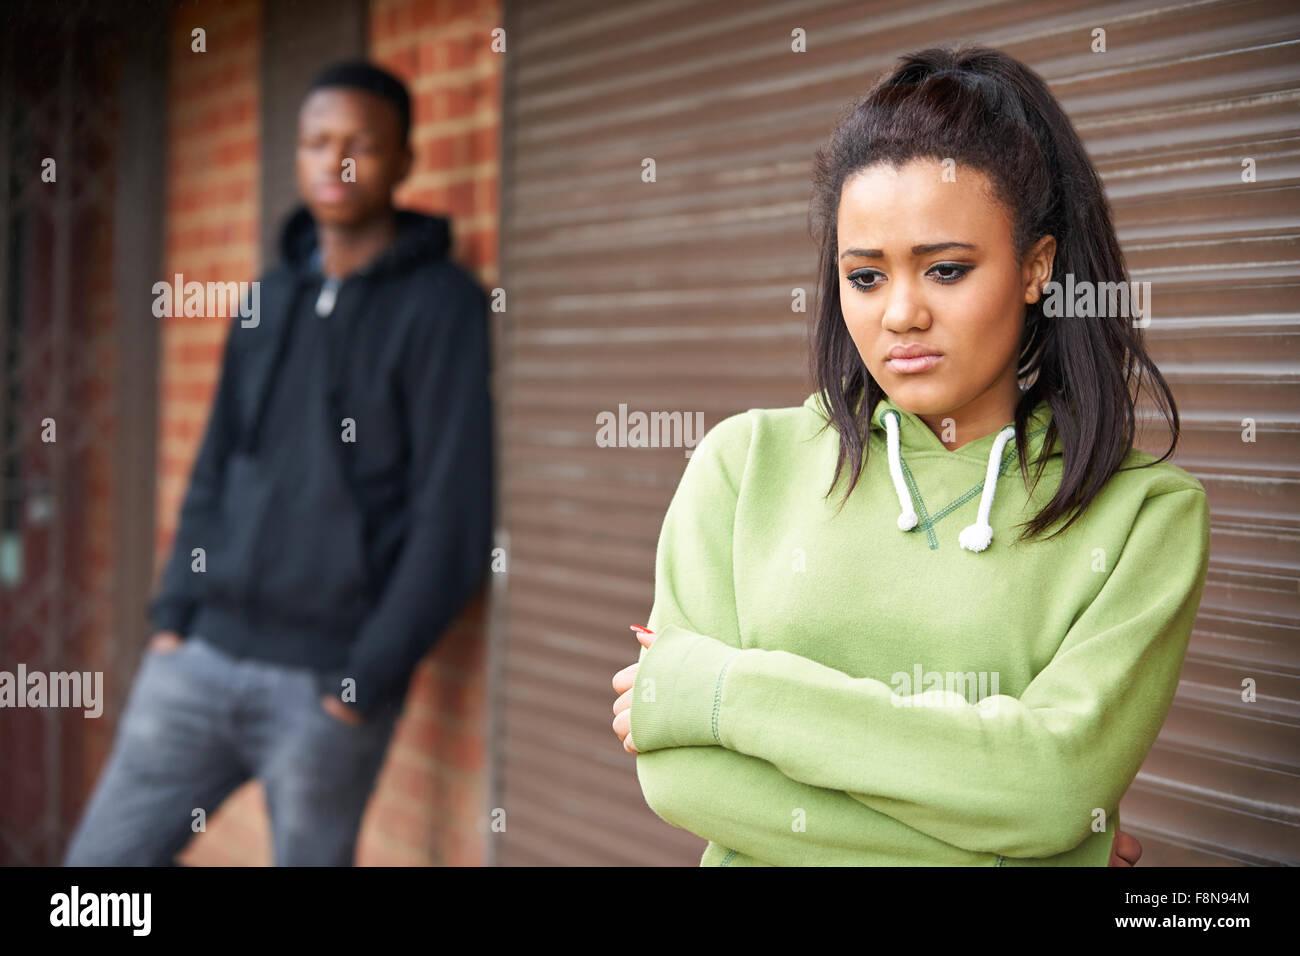 Portrait Of Unhappy Teenage Couple In Urban Setting - Stock Image